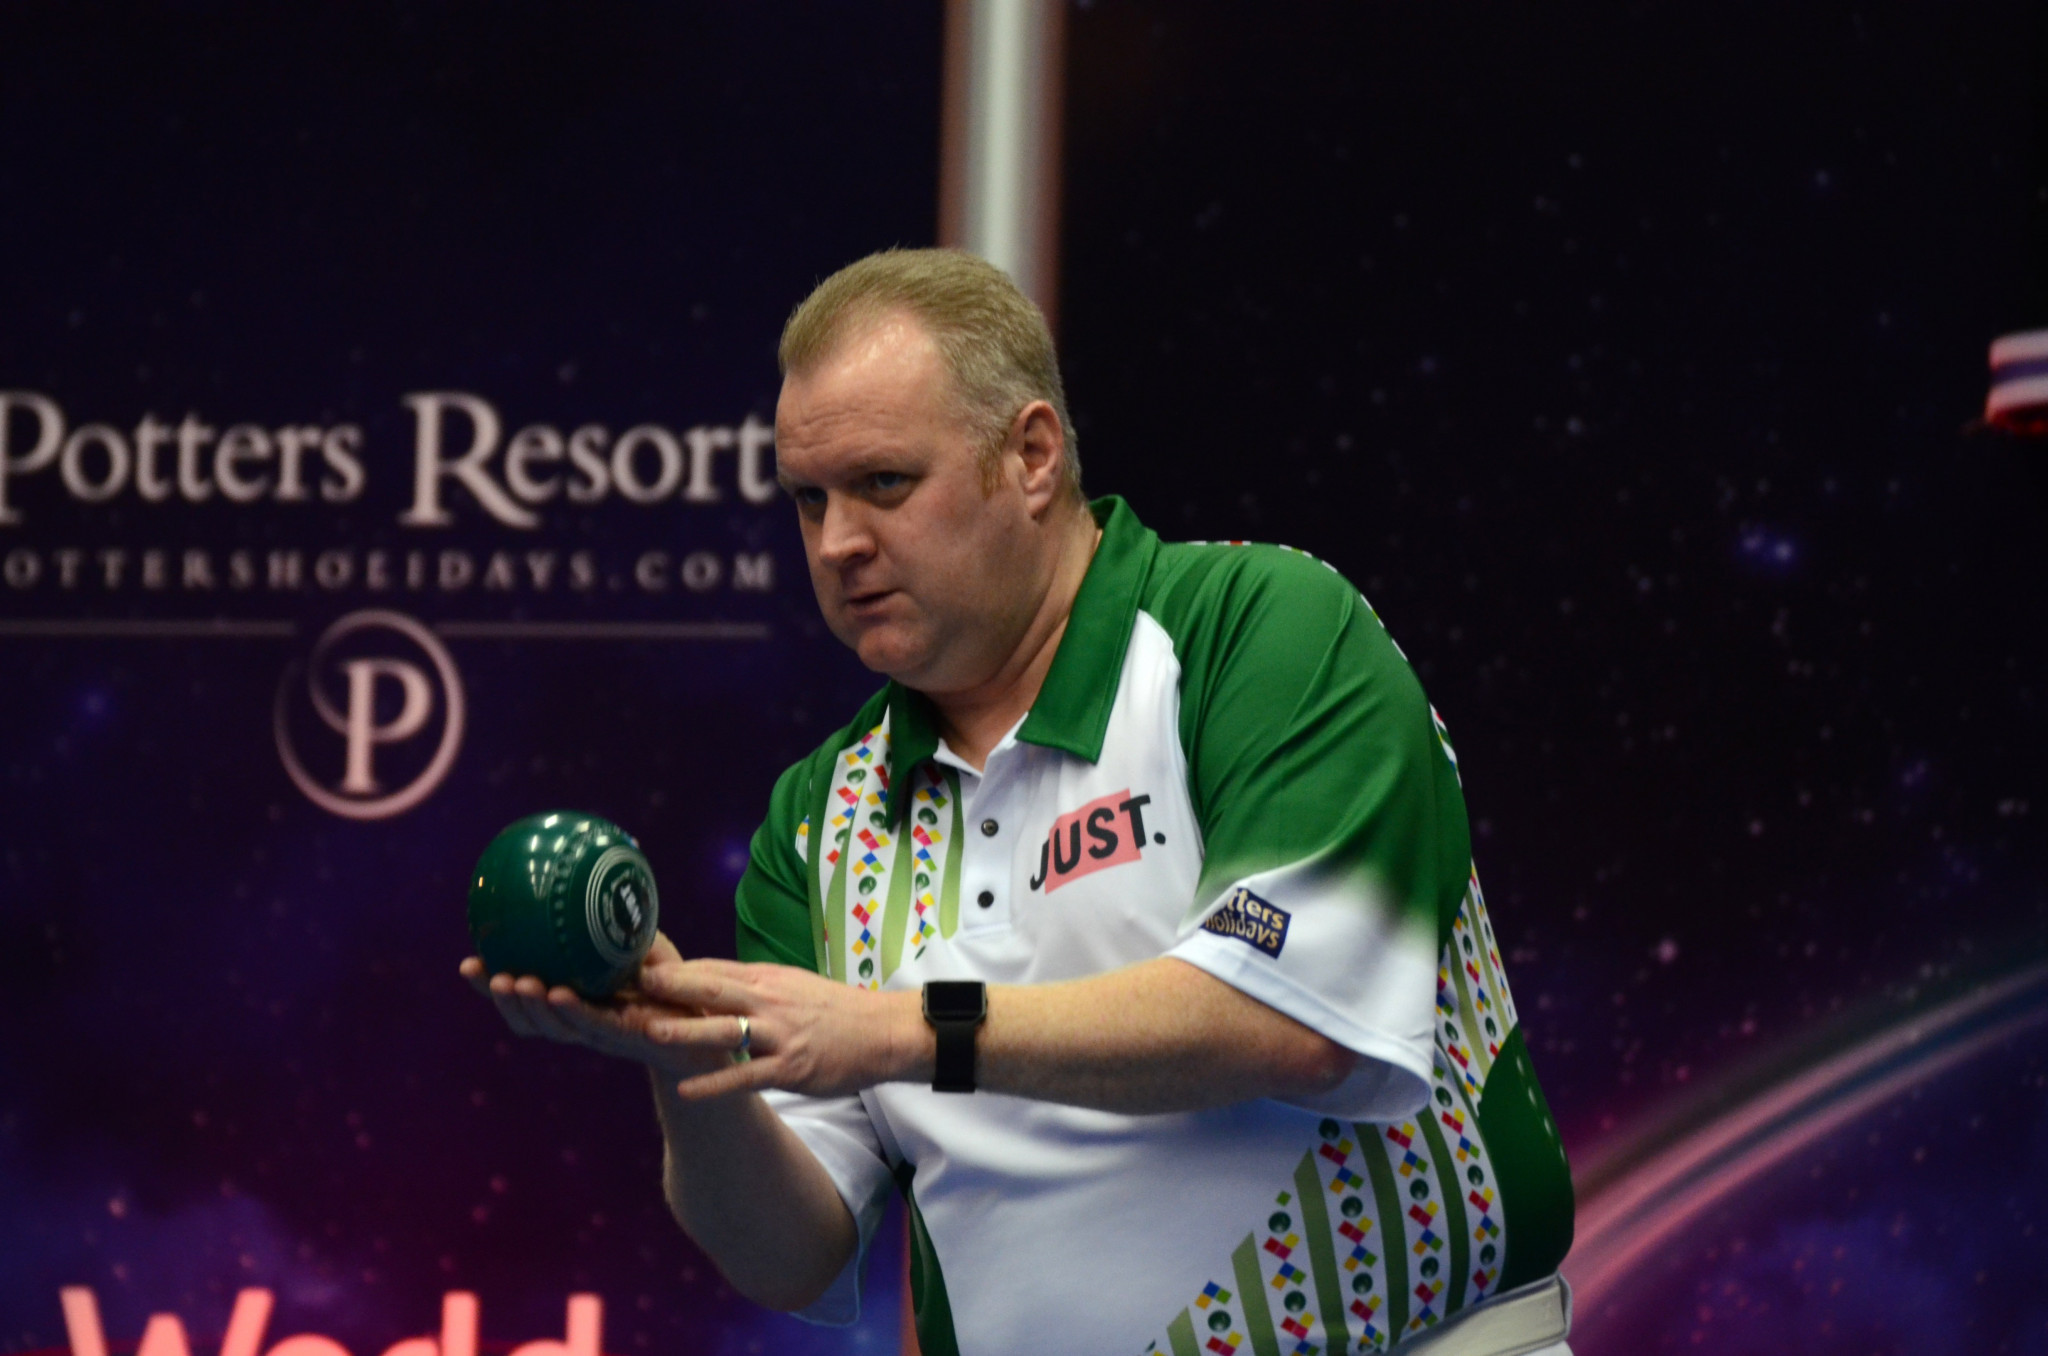 Scotland's Darren Burnett set up a meeting with England's Mark Dawes in the next round after he proved too strong for Welsh bowler Jason Greenslade ©World Bowls Tour